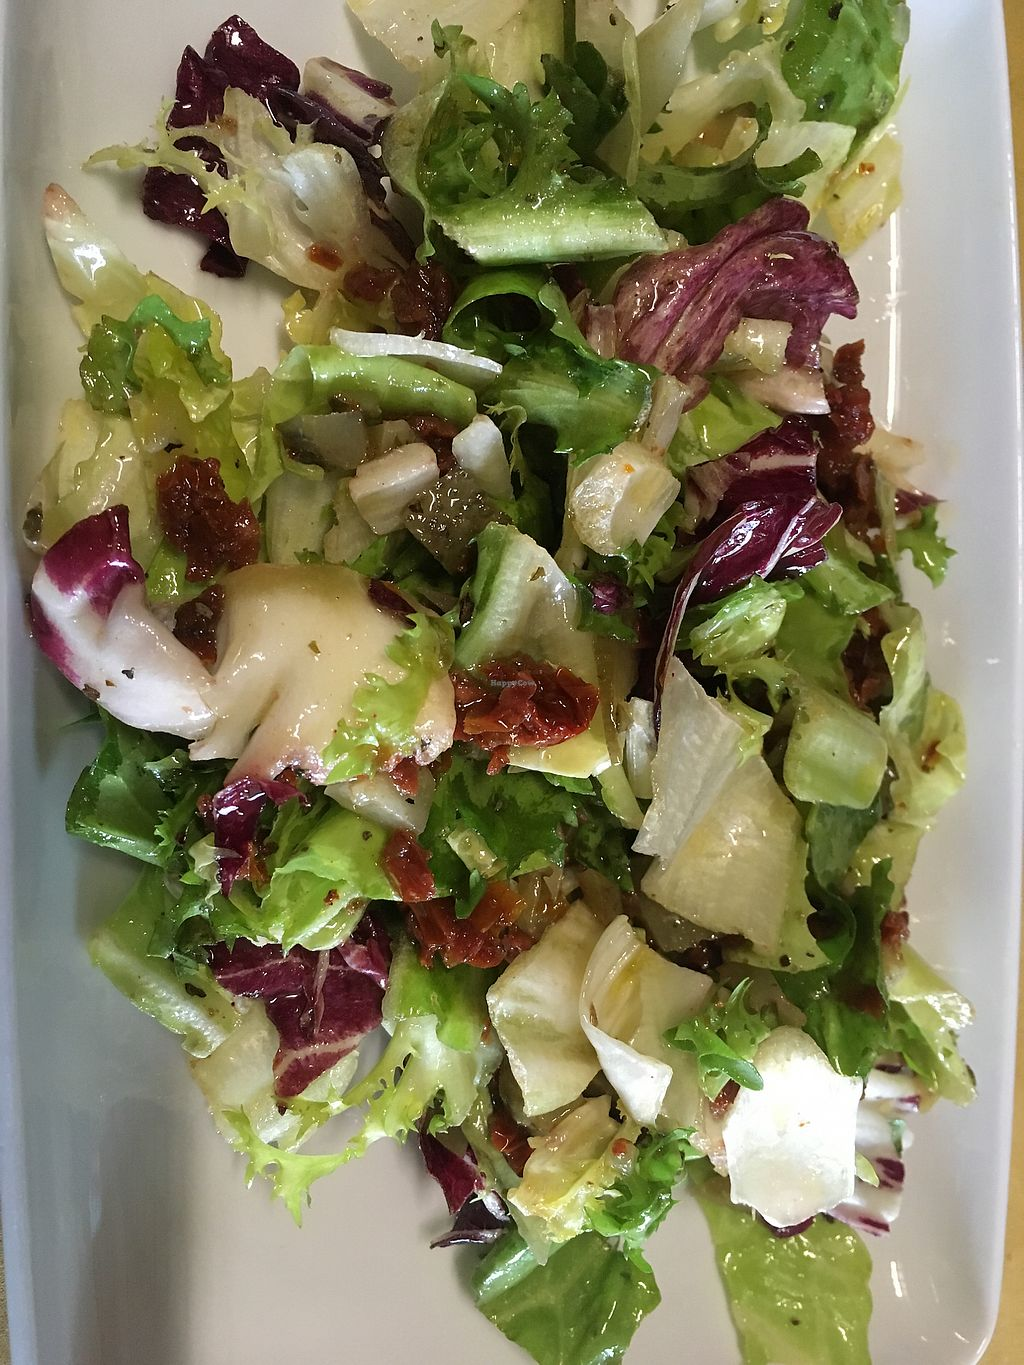 "Photo of Al Mangiar Sano  by <a href=""/members/profile/hokusai77"">hokusai77</a> <br/>Mixed salad with sundries tomatoes <br/> November 2, 2017  - <a href='/contact/abuse/image/104121/321121'>Report</a>"